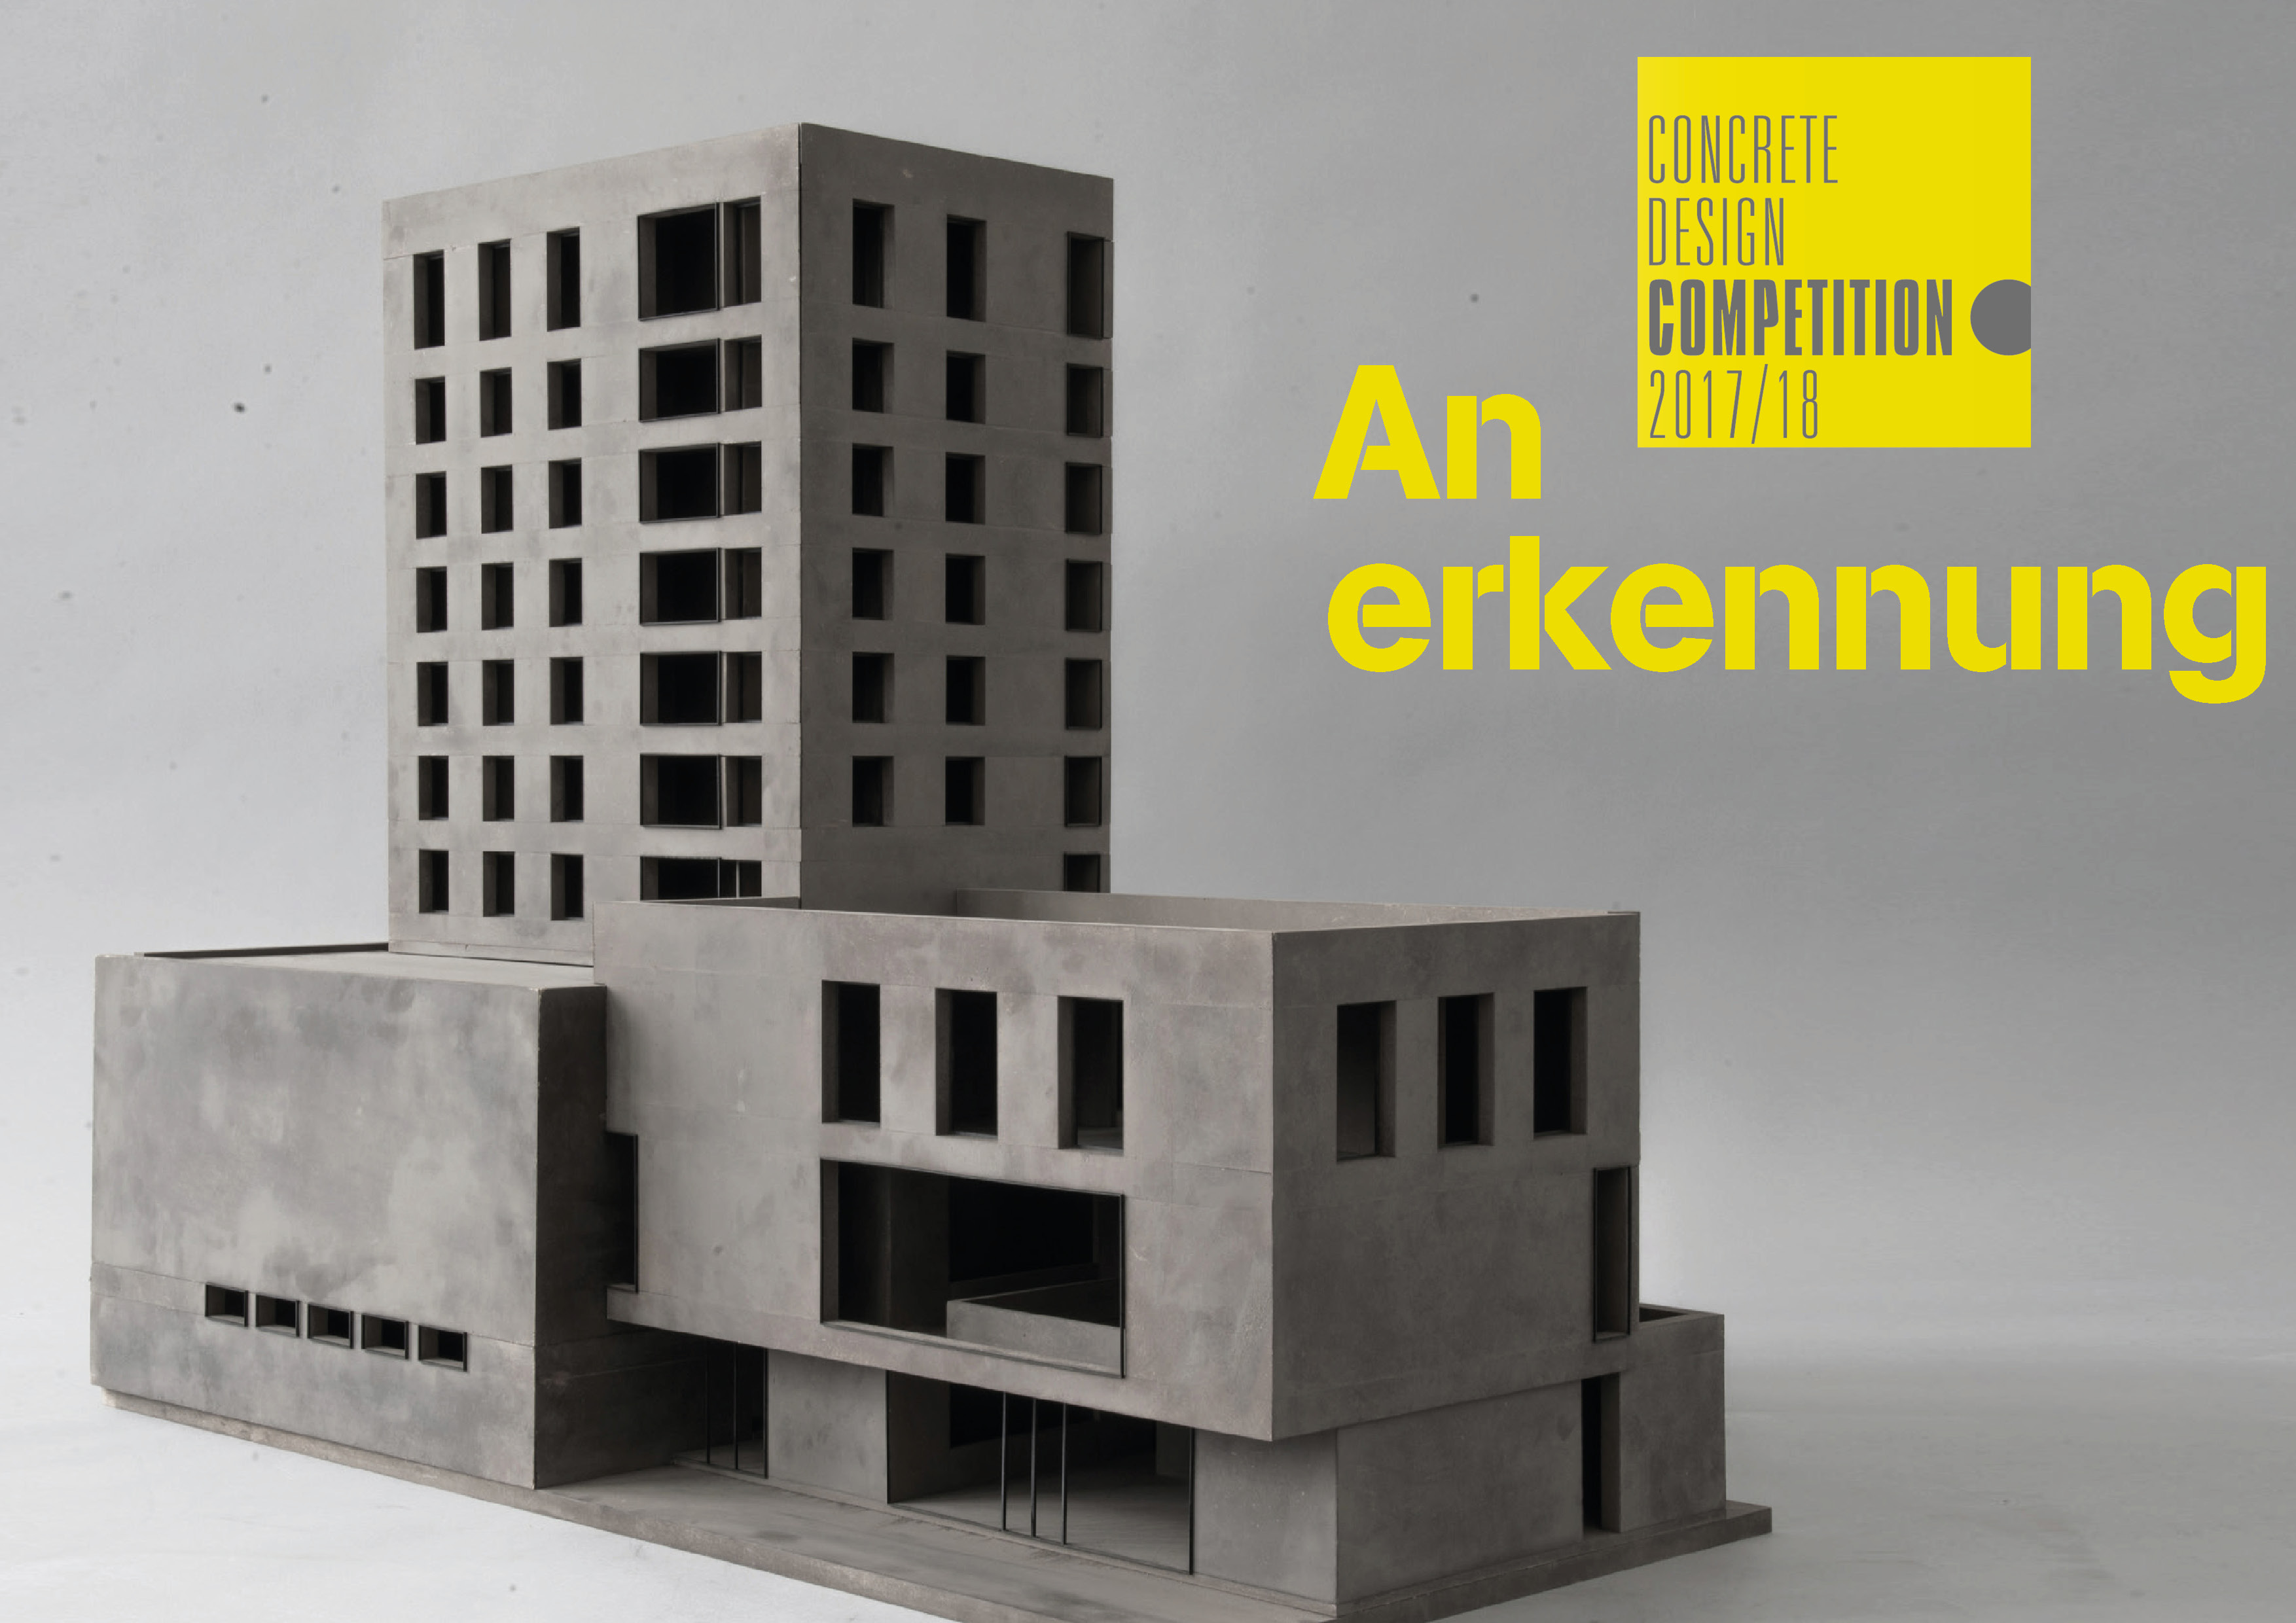 Concrete Design Competition 2017/18 TACTILITY - Anerkennungen